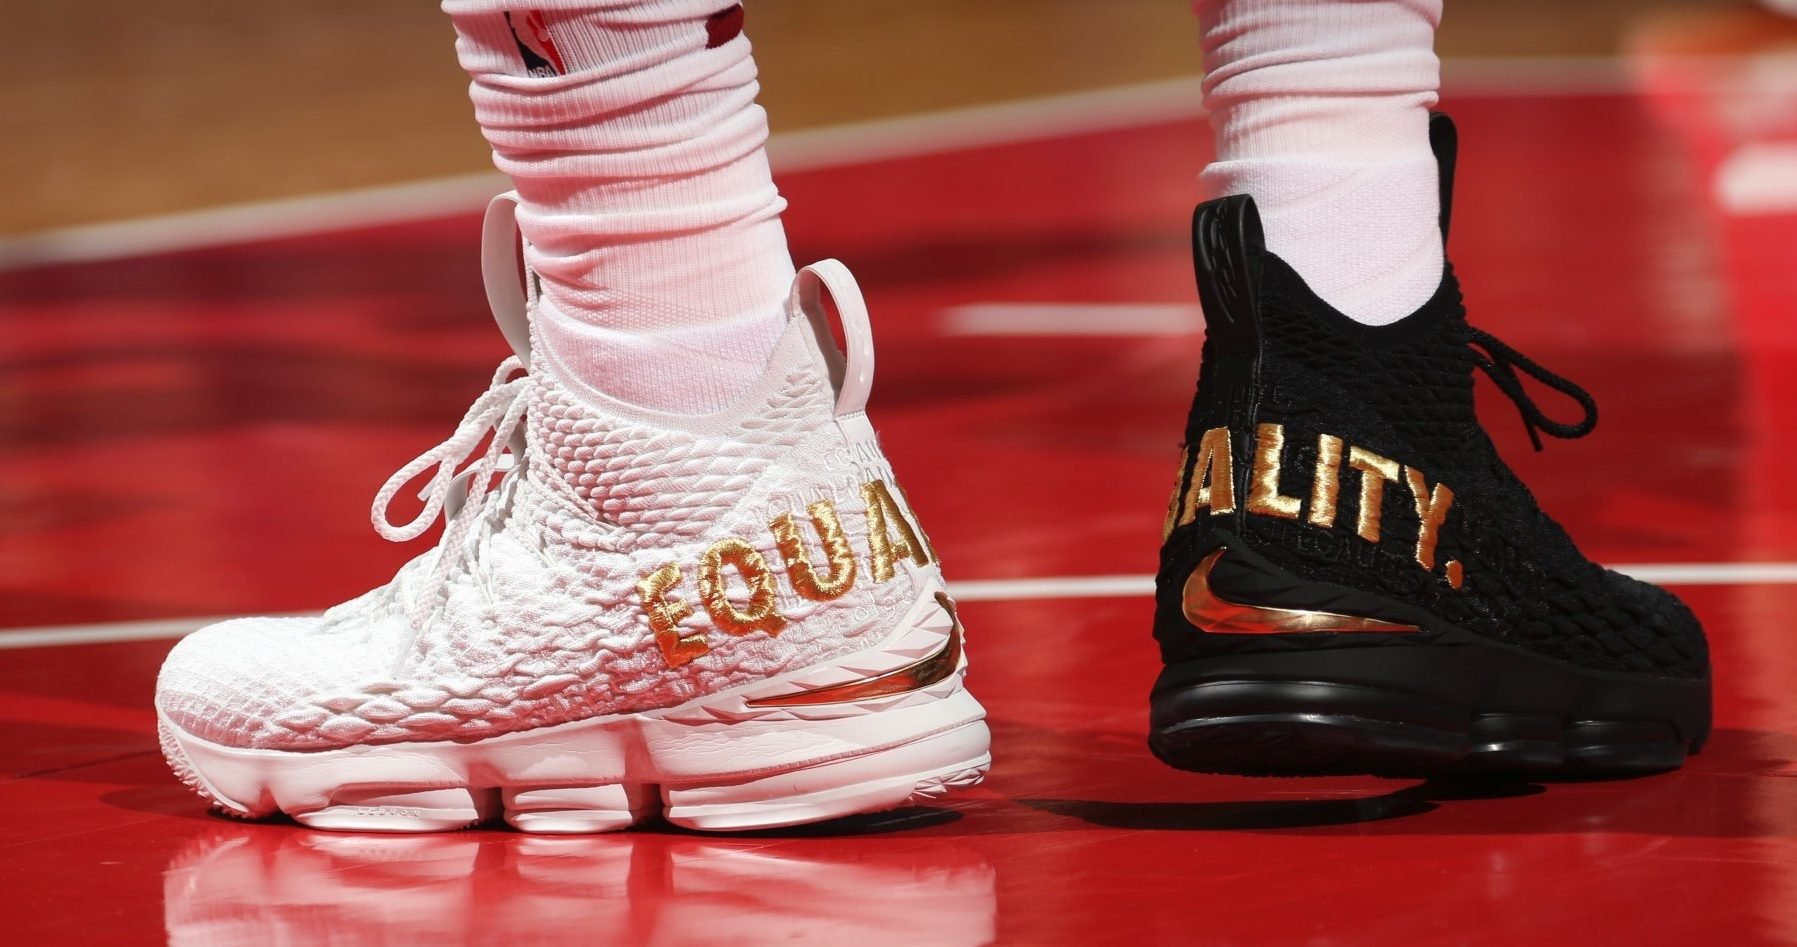 Lebron James Shoes Pink And White